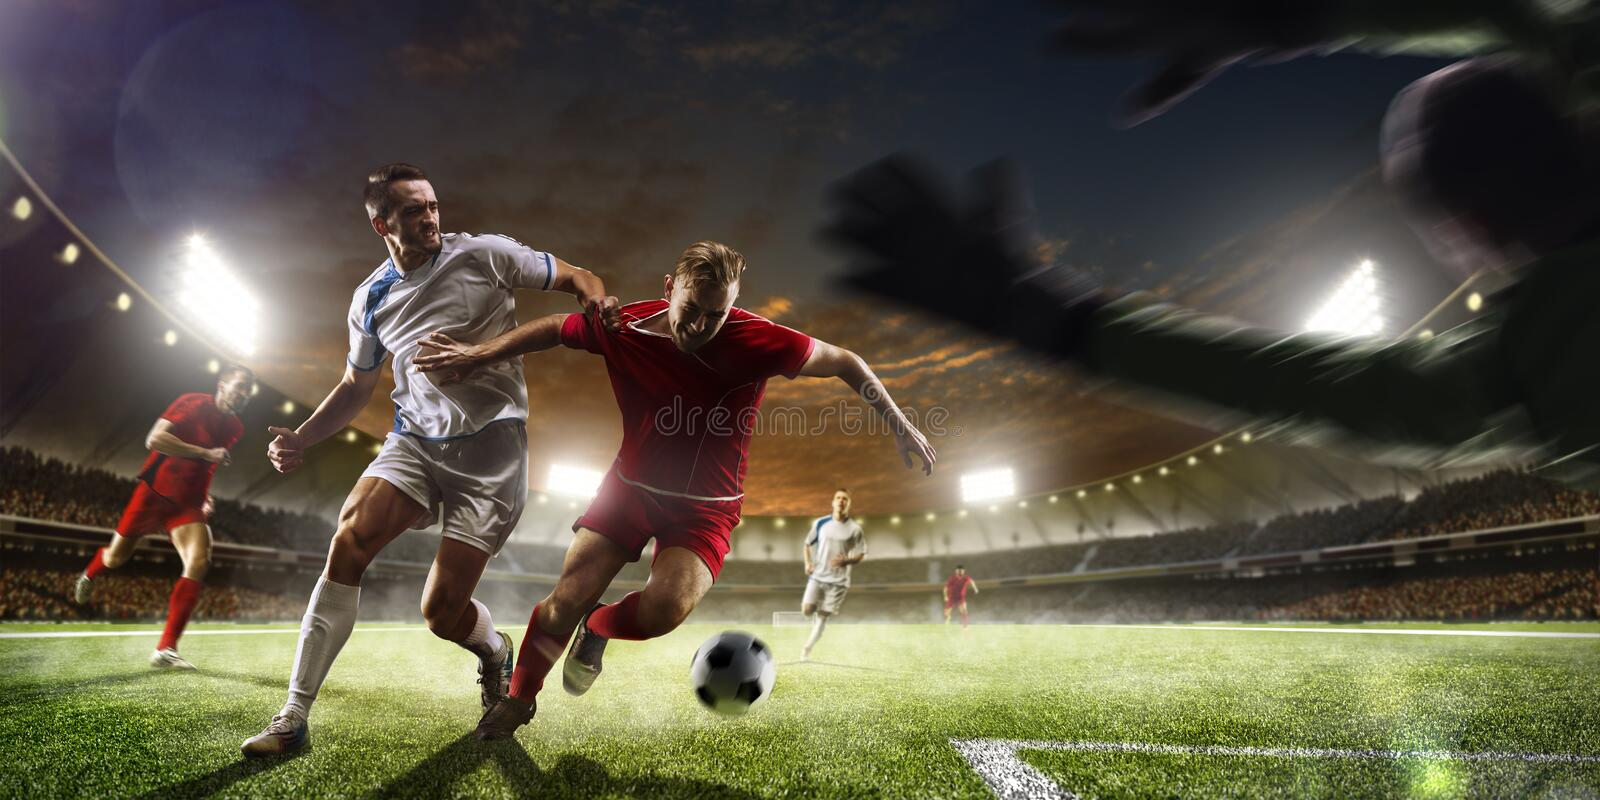 Download Soccer Players In Action On Sunset Stadium Background Panorama Stock Image - Image: 63968973